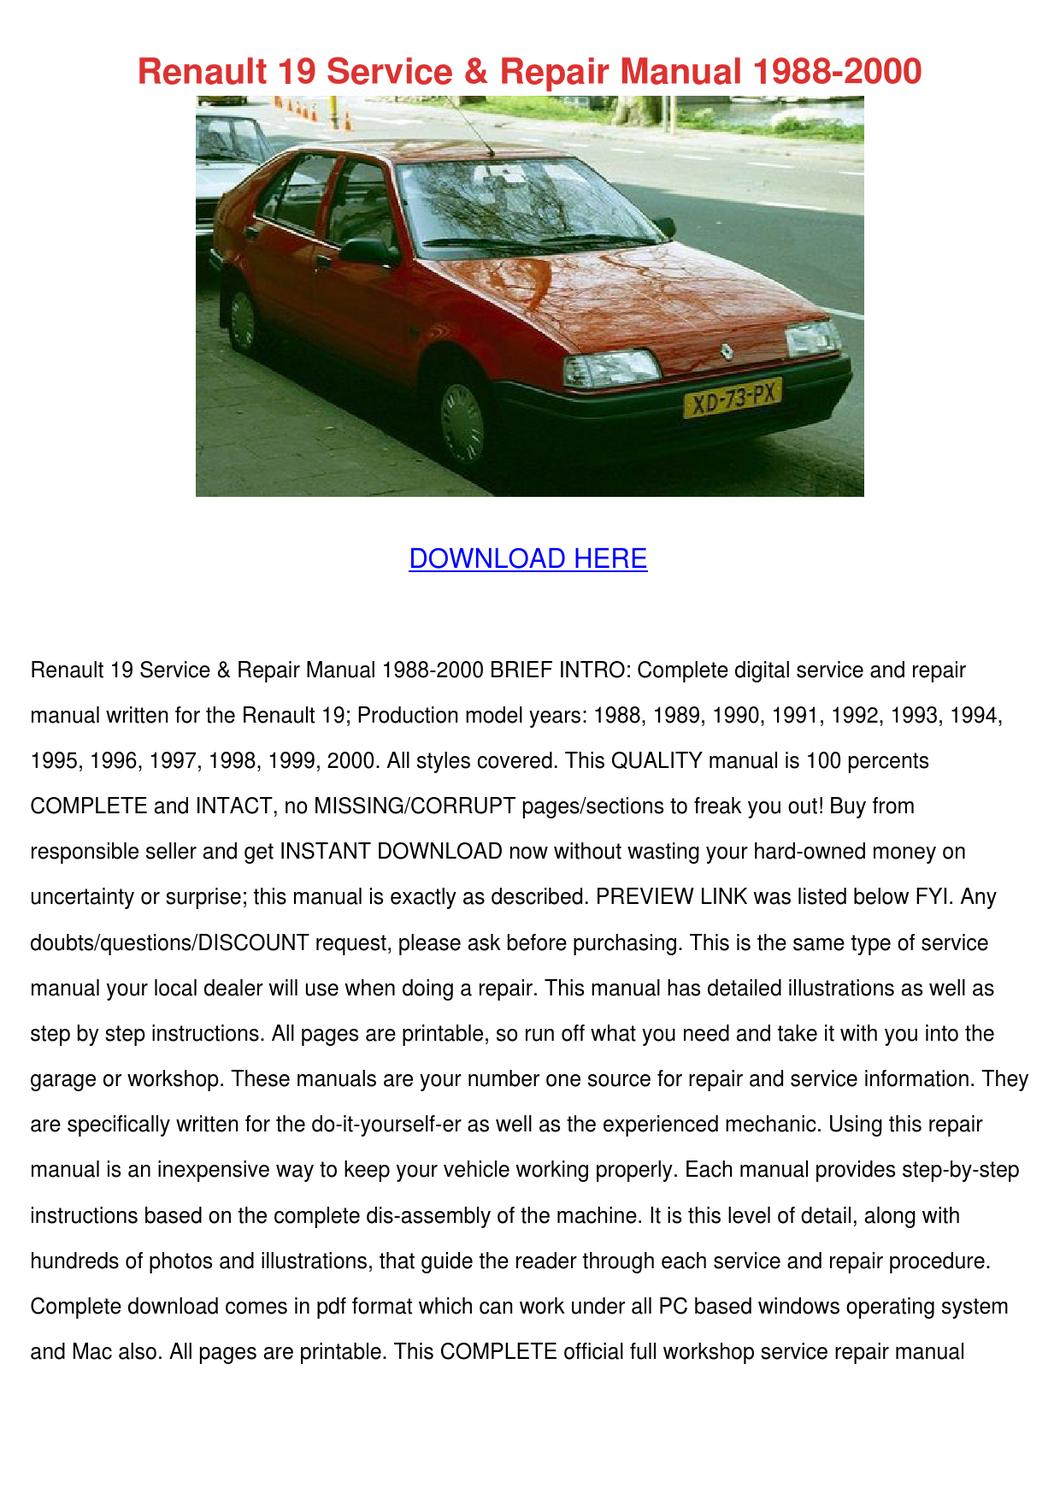 renault 19 service repair manual 1988 2000 by patricia Update Minecraft 1.7.11 Minecraft 1.7.11 and the Guardians